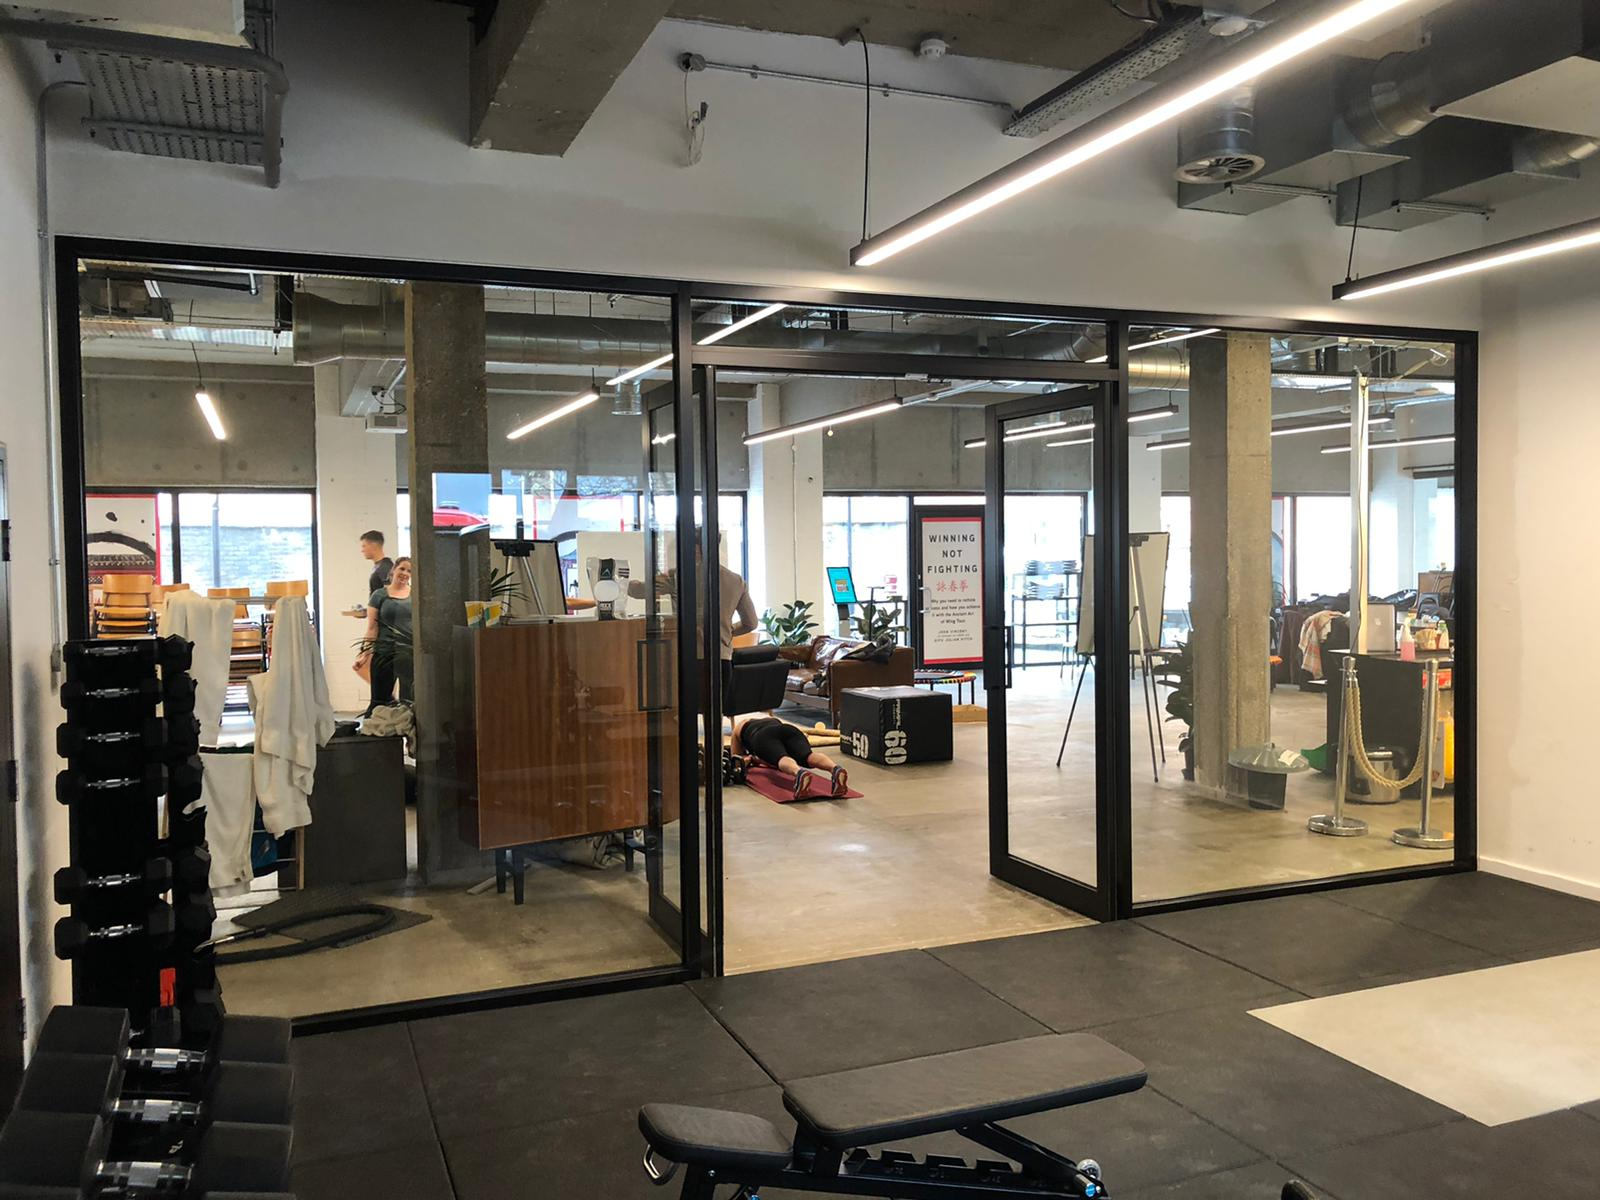 Commercial doors for gyms